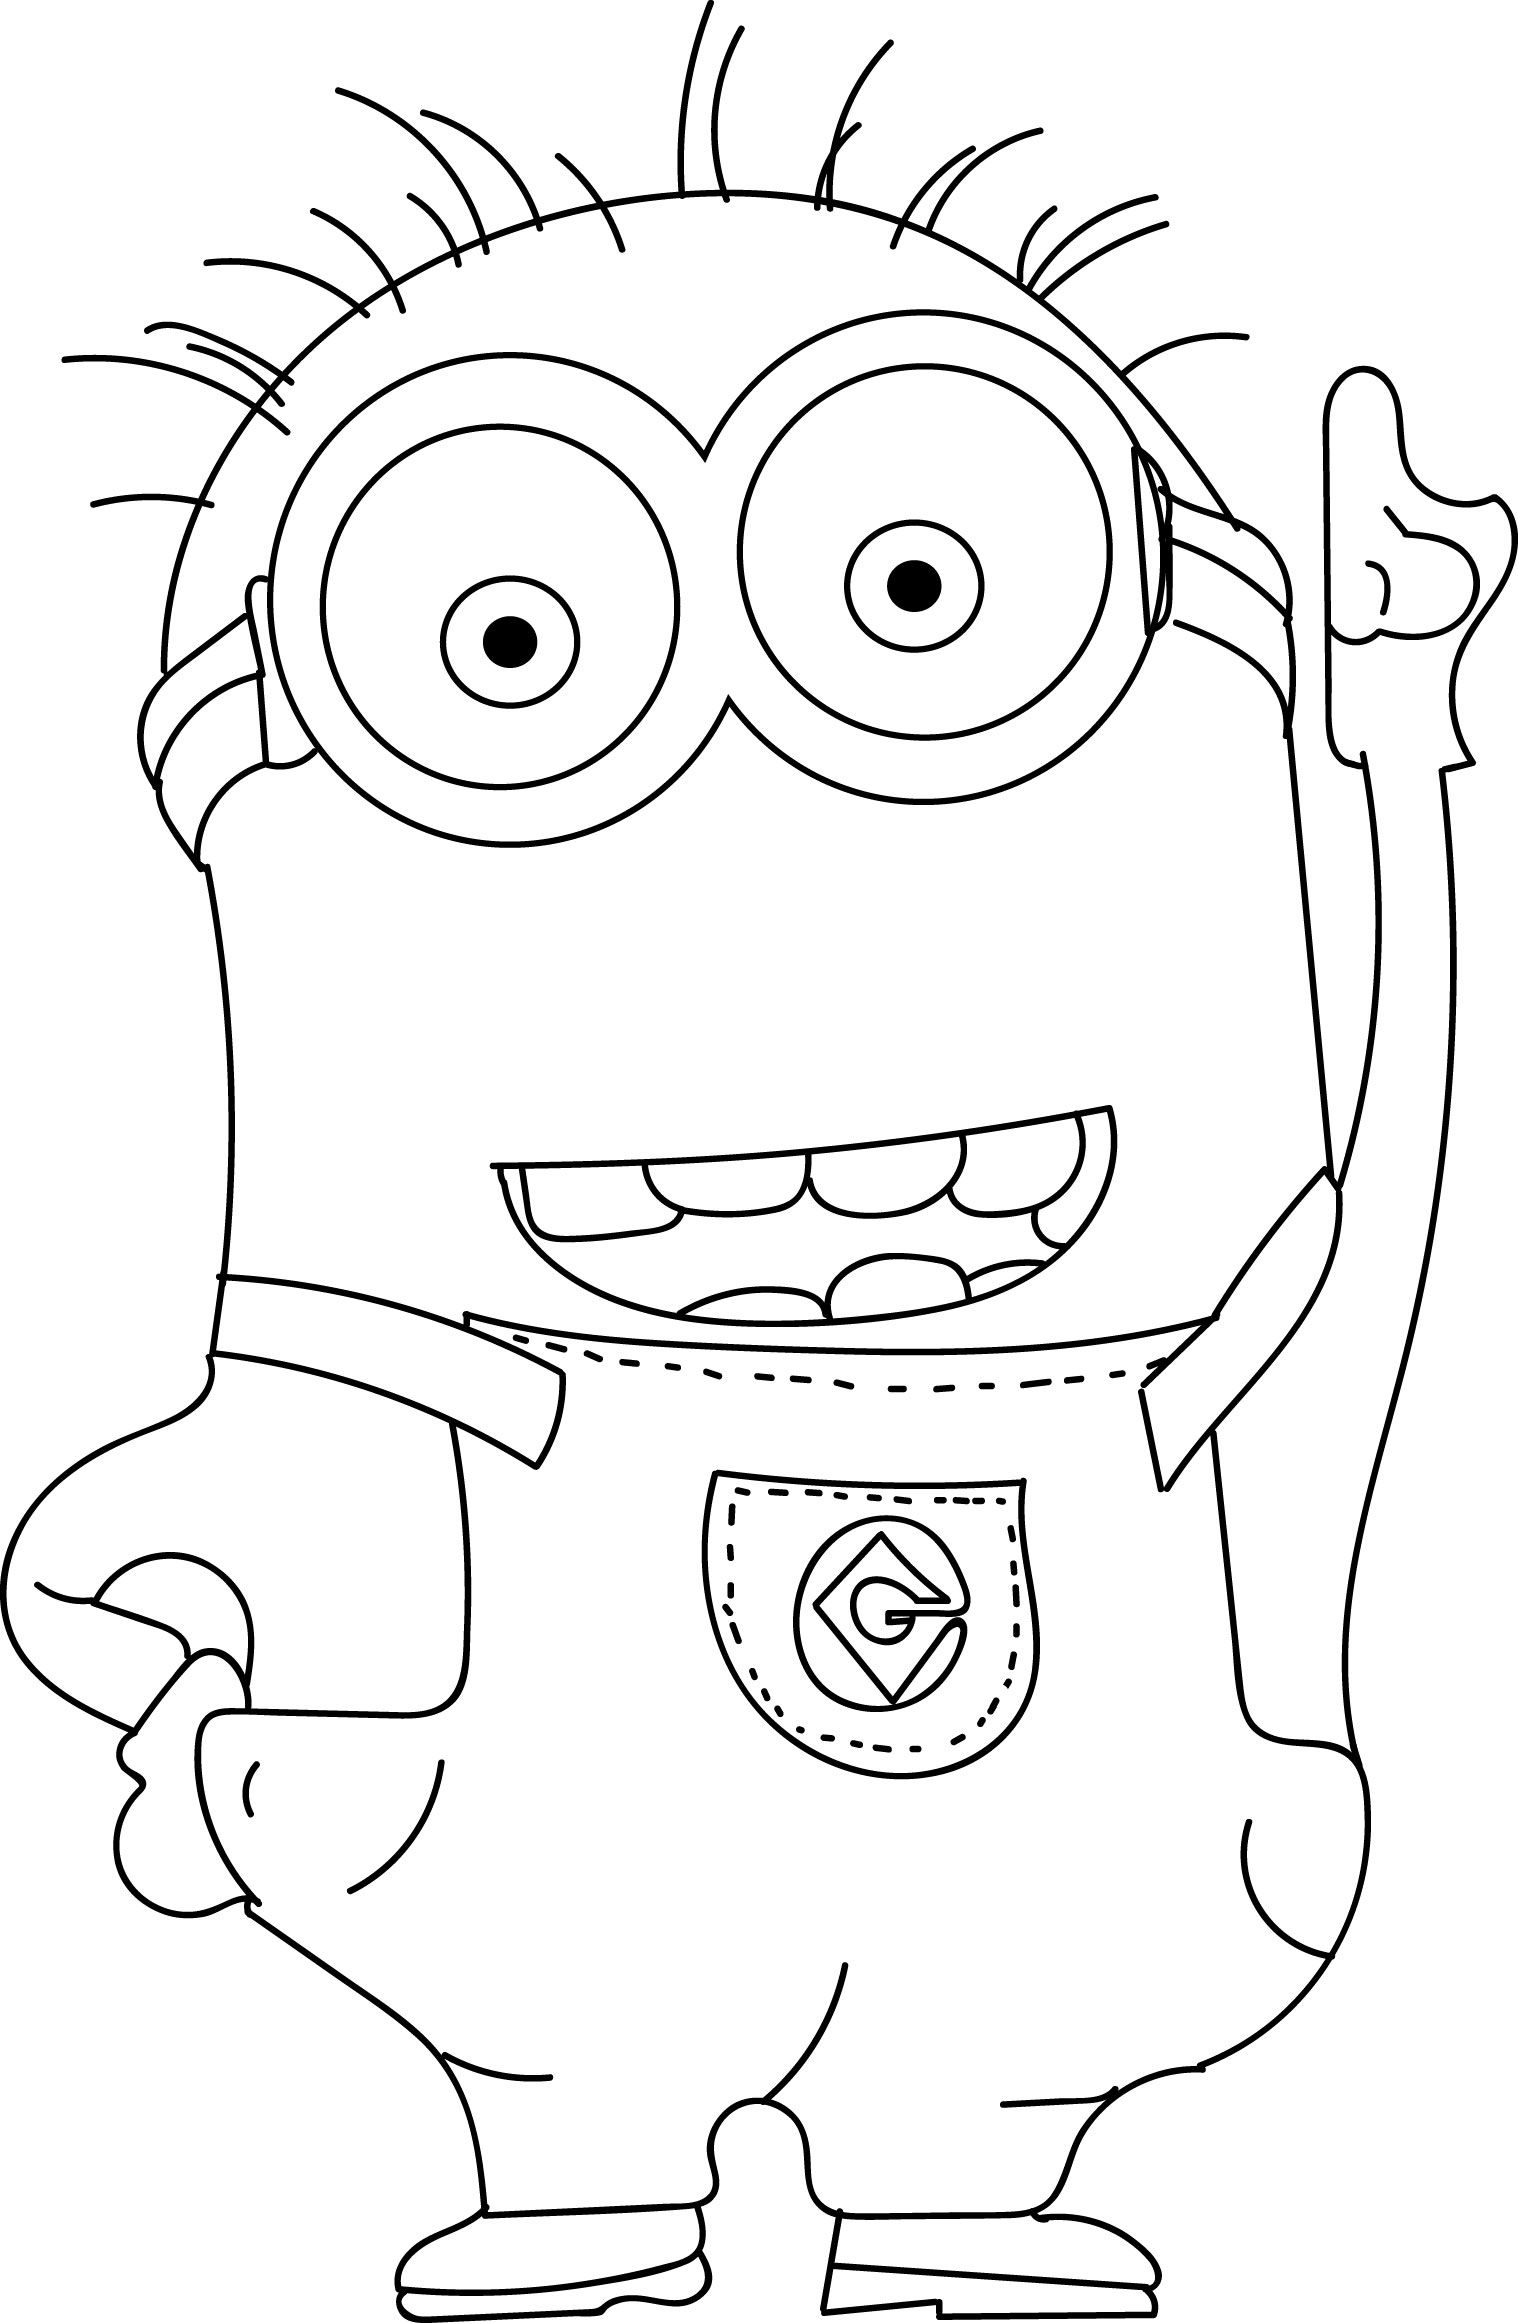 printable minion pictures minion drawing free download on clipartmag printable pictures minion